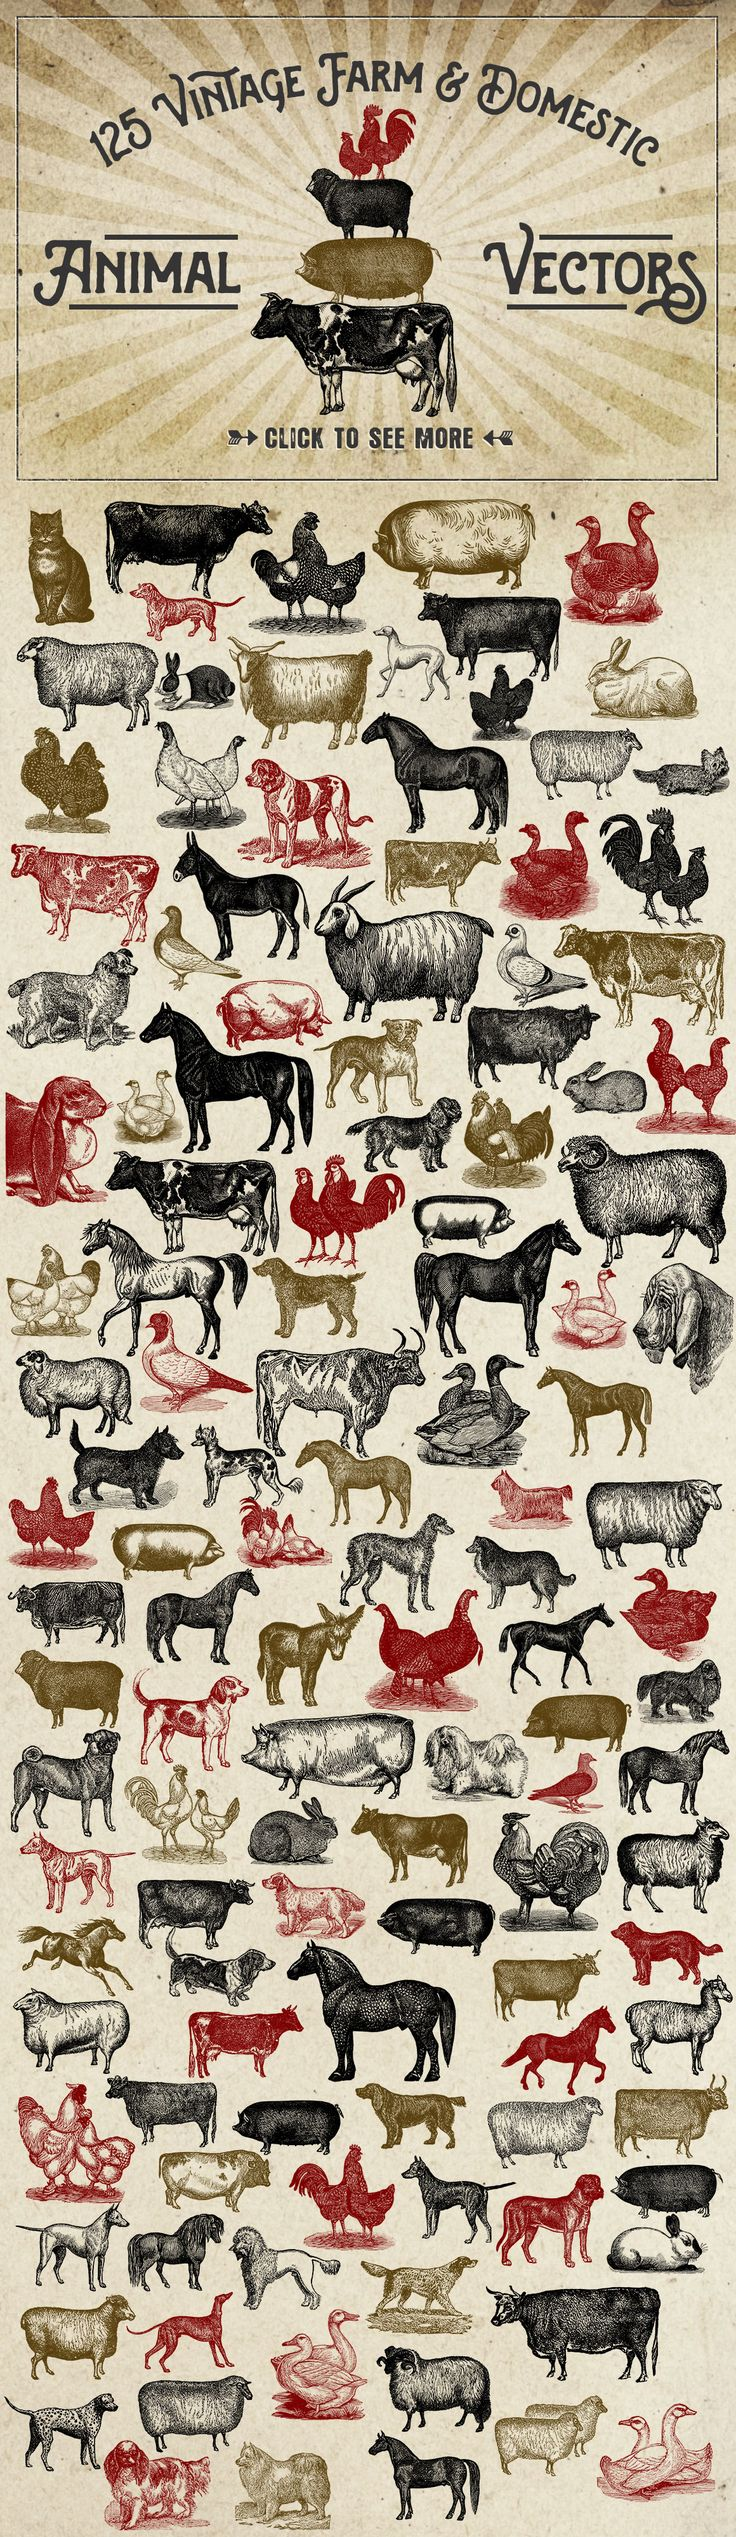 Vintage Farm Animal Vector Graphics by Eclectic Anthology on Creative Market